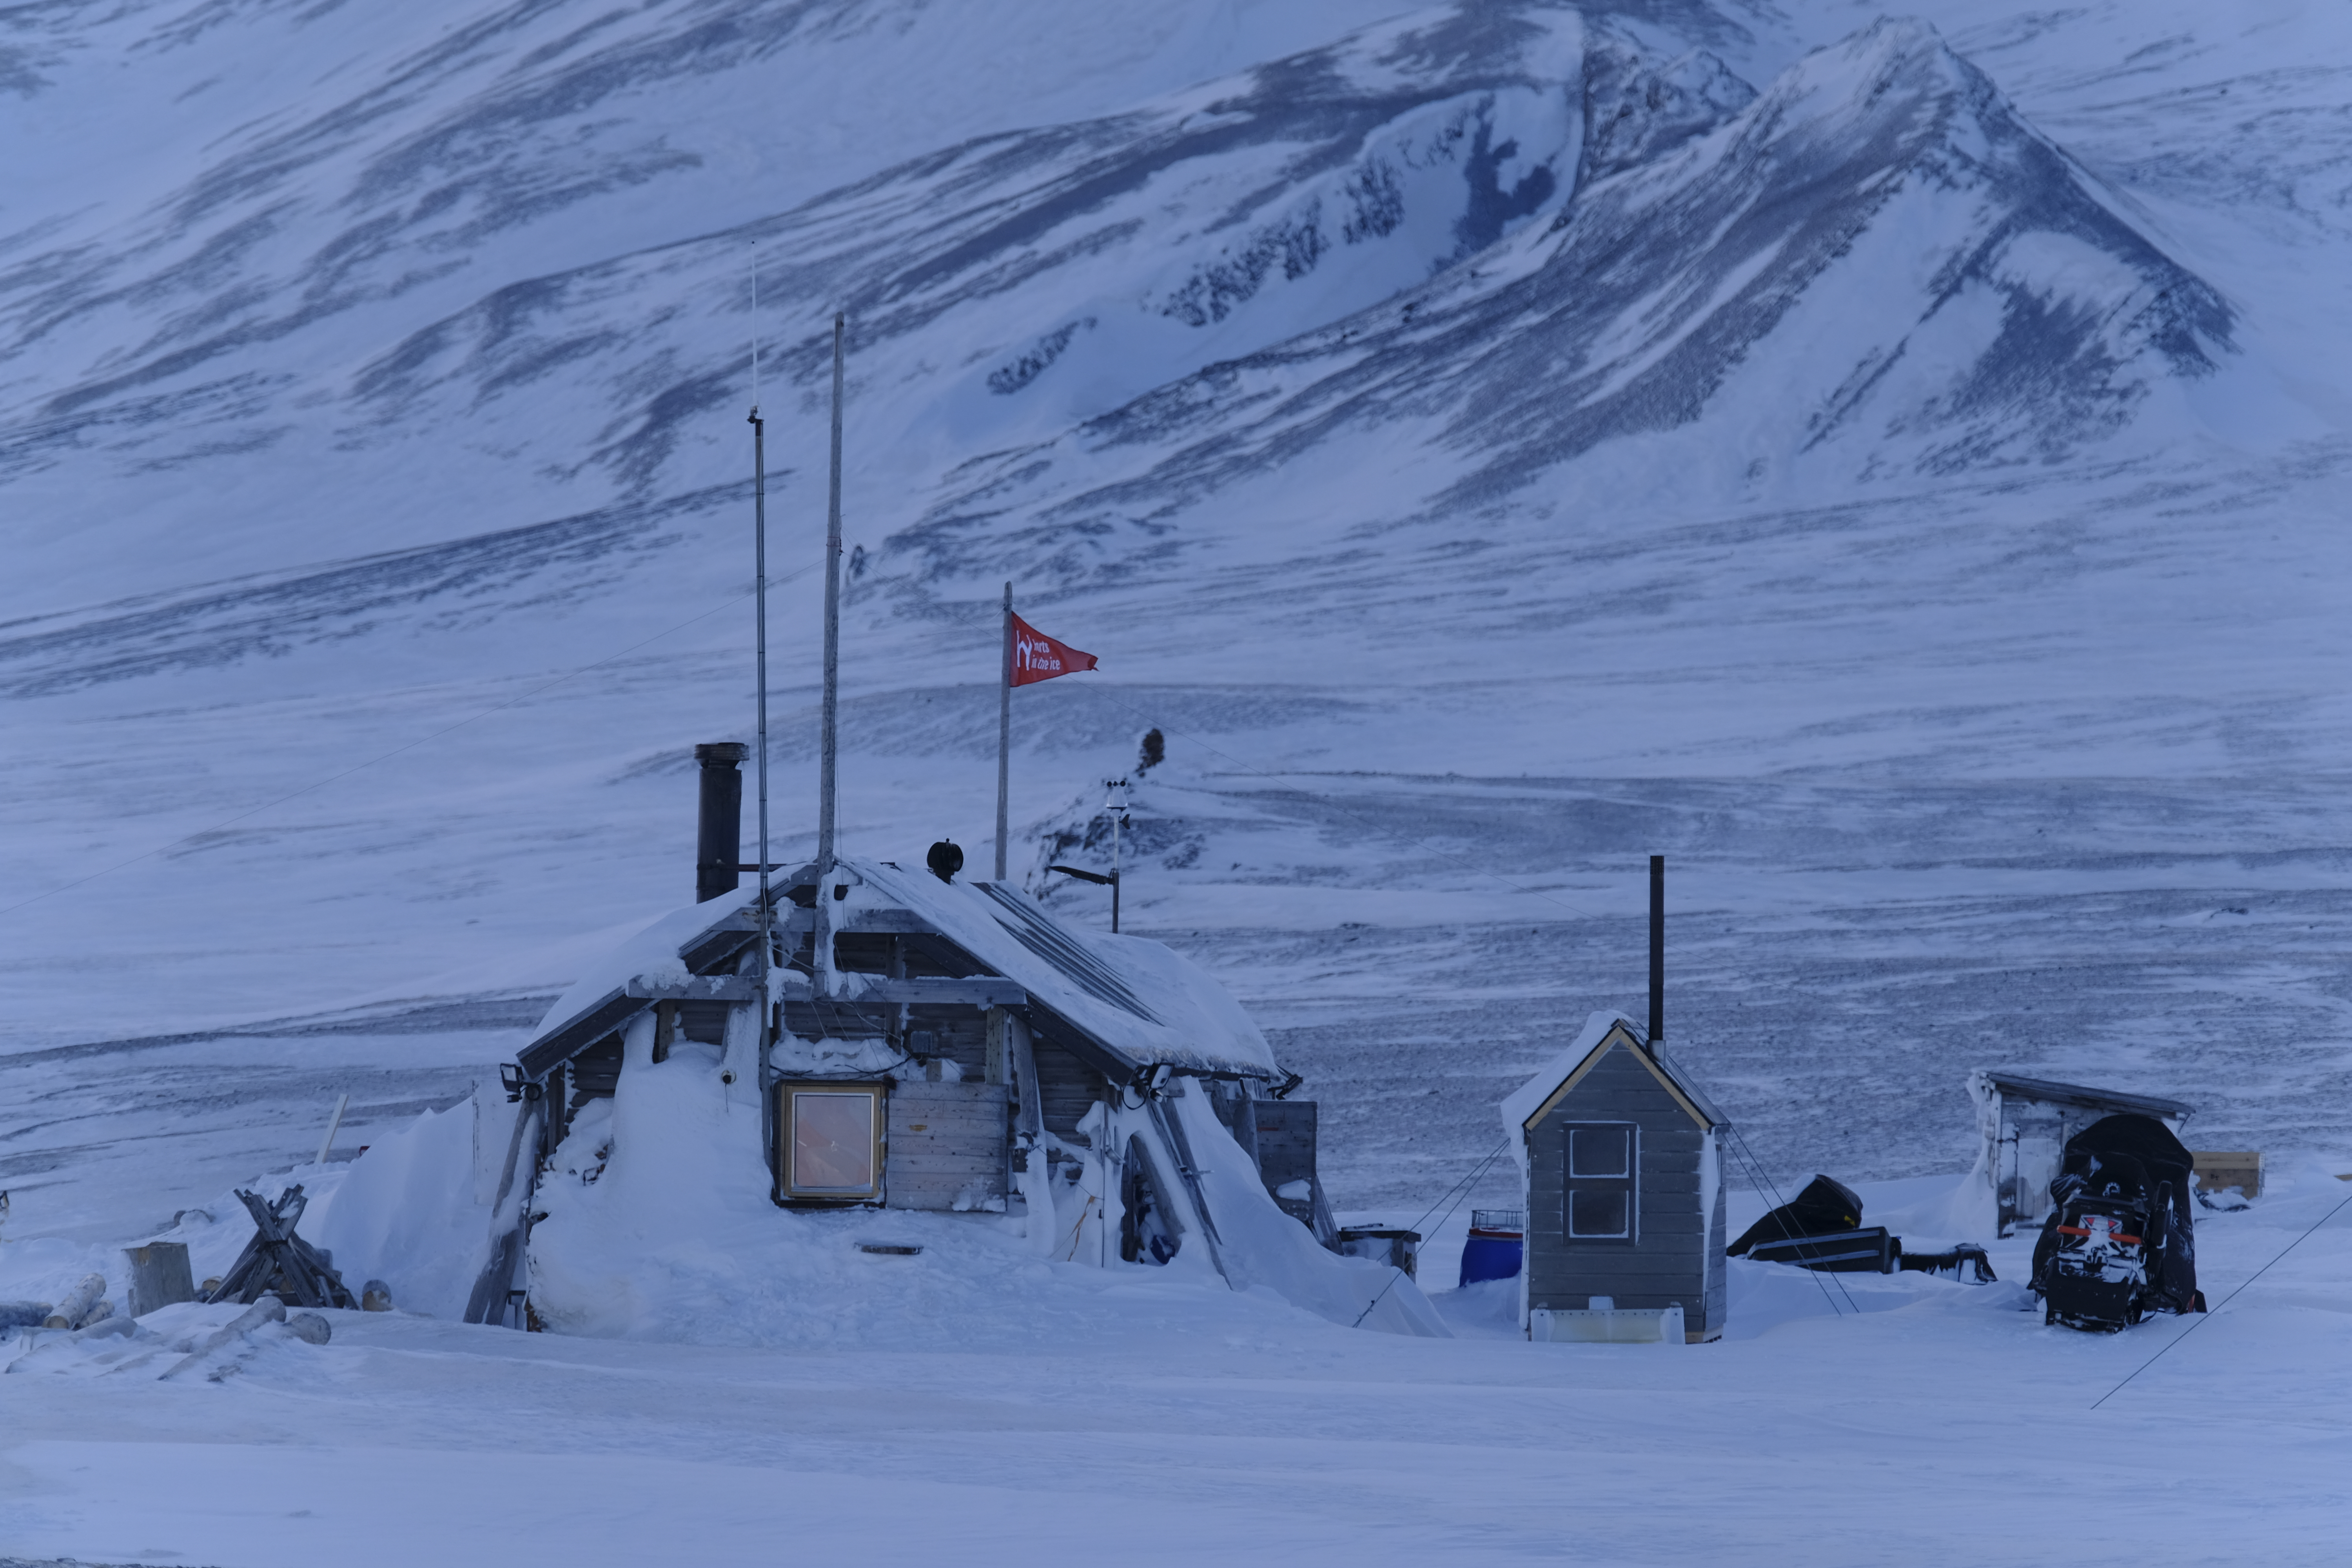 Sunniva Sorby and Hilde Fålun Strøm's cabin in Svalbard, Norway.